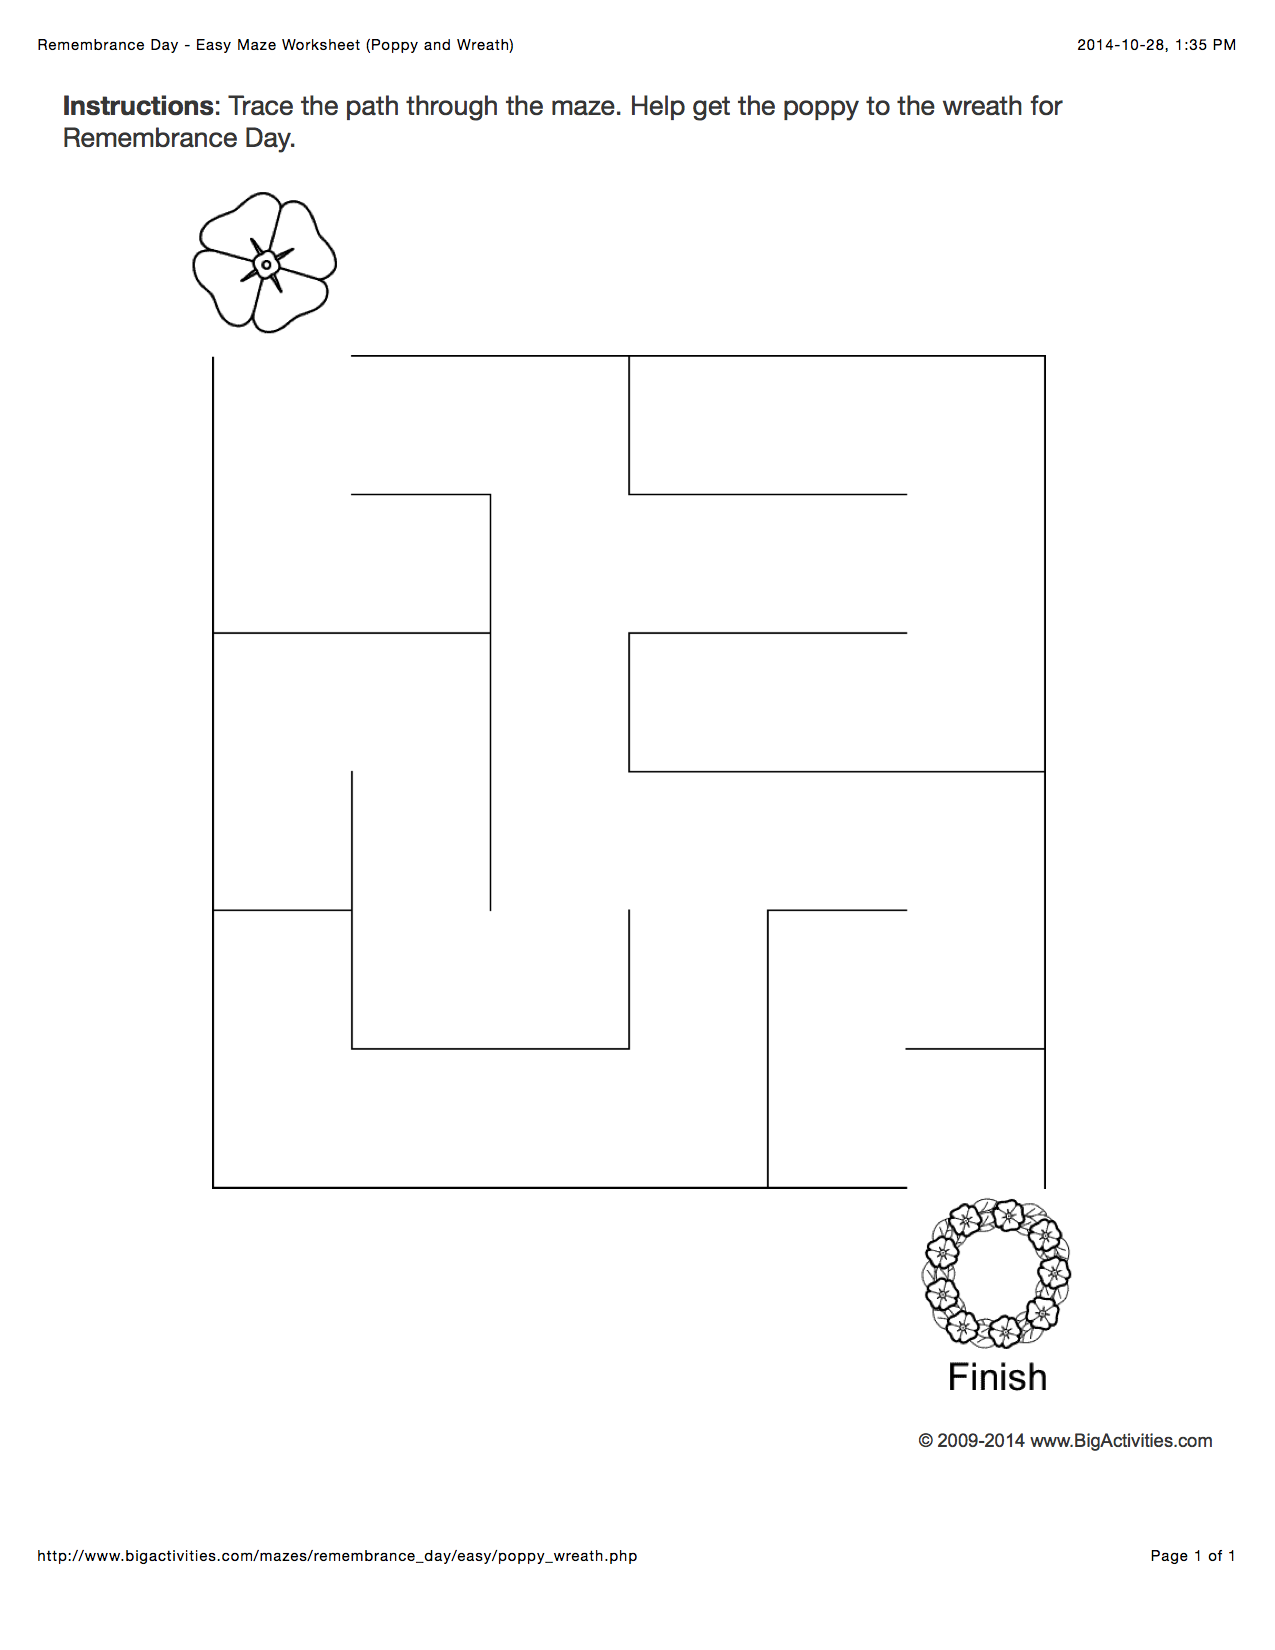 Remembrance Day Maze Worksheet With A Poppy And A Wreath